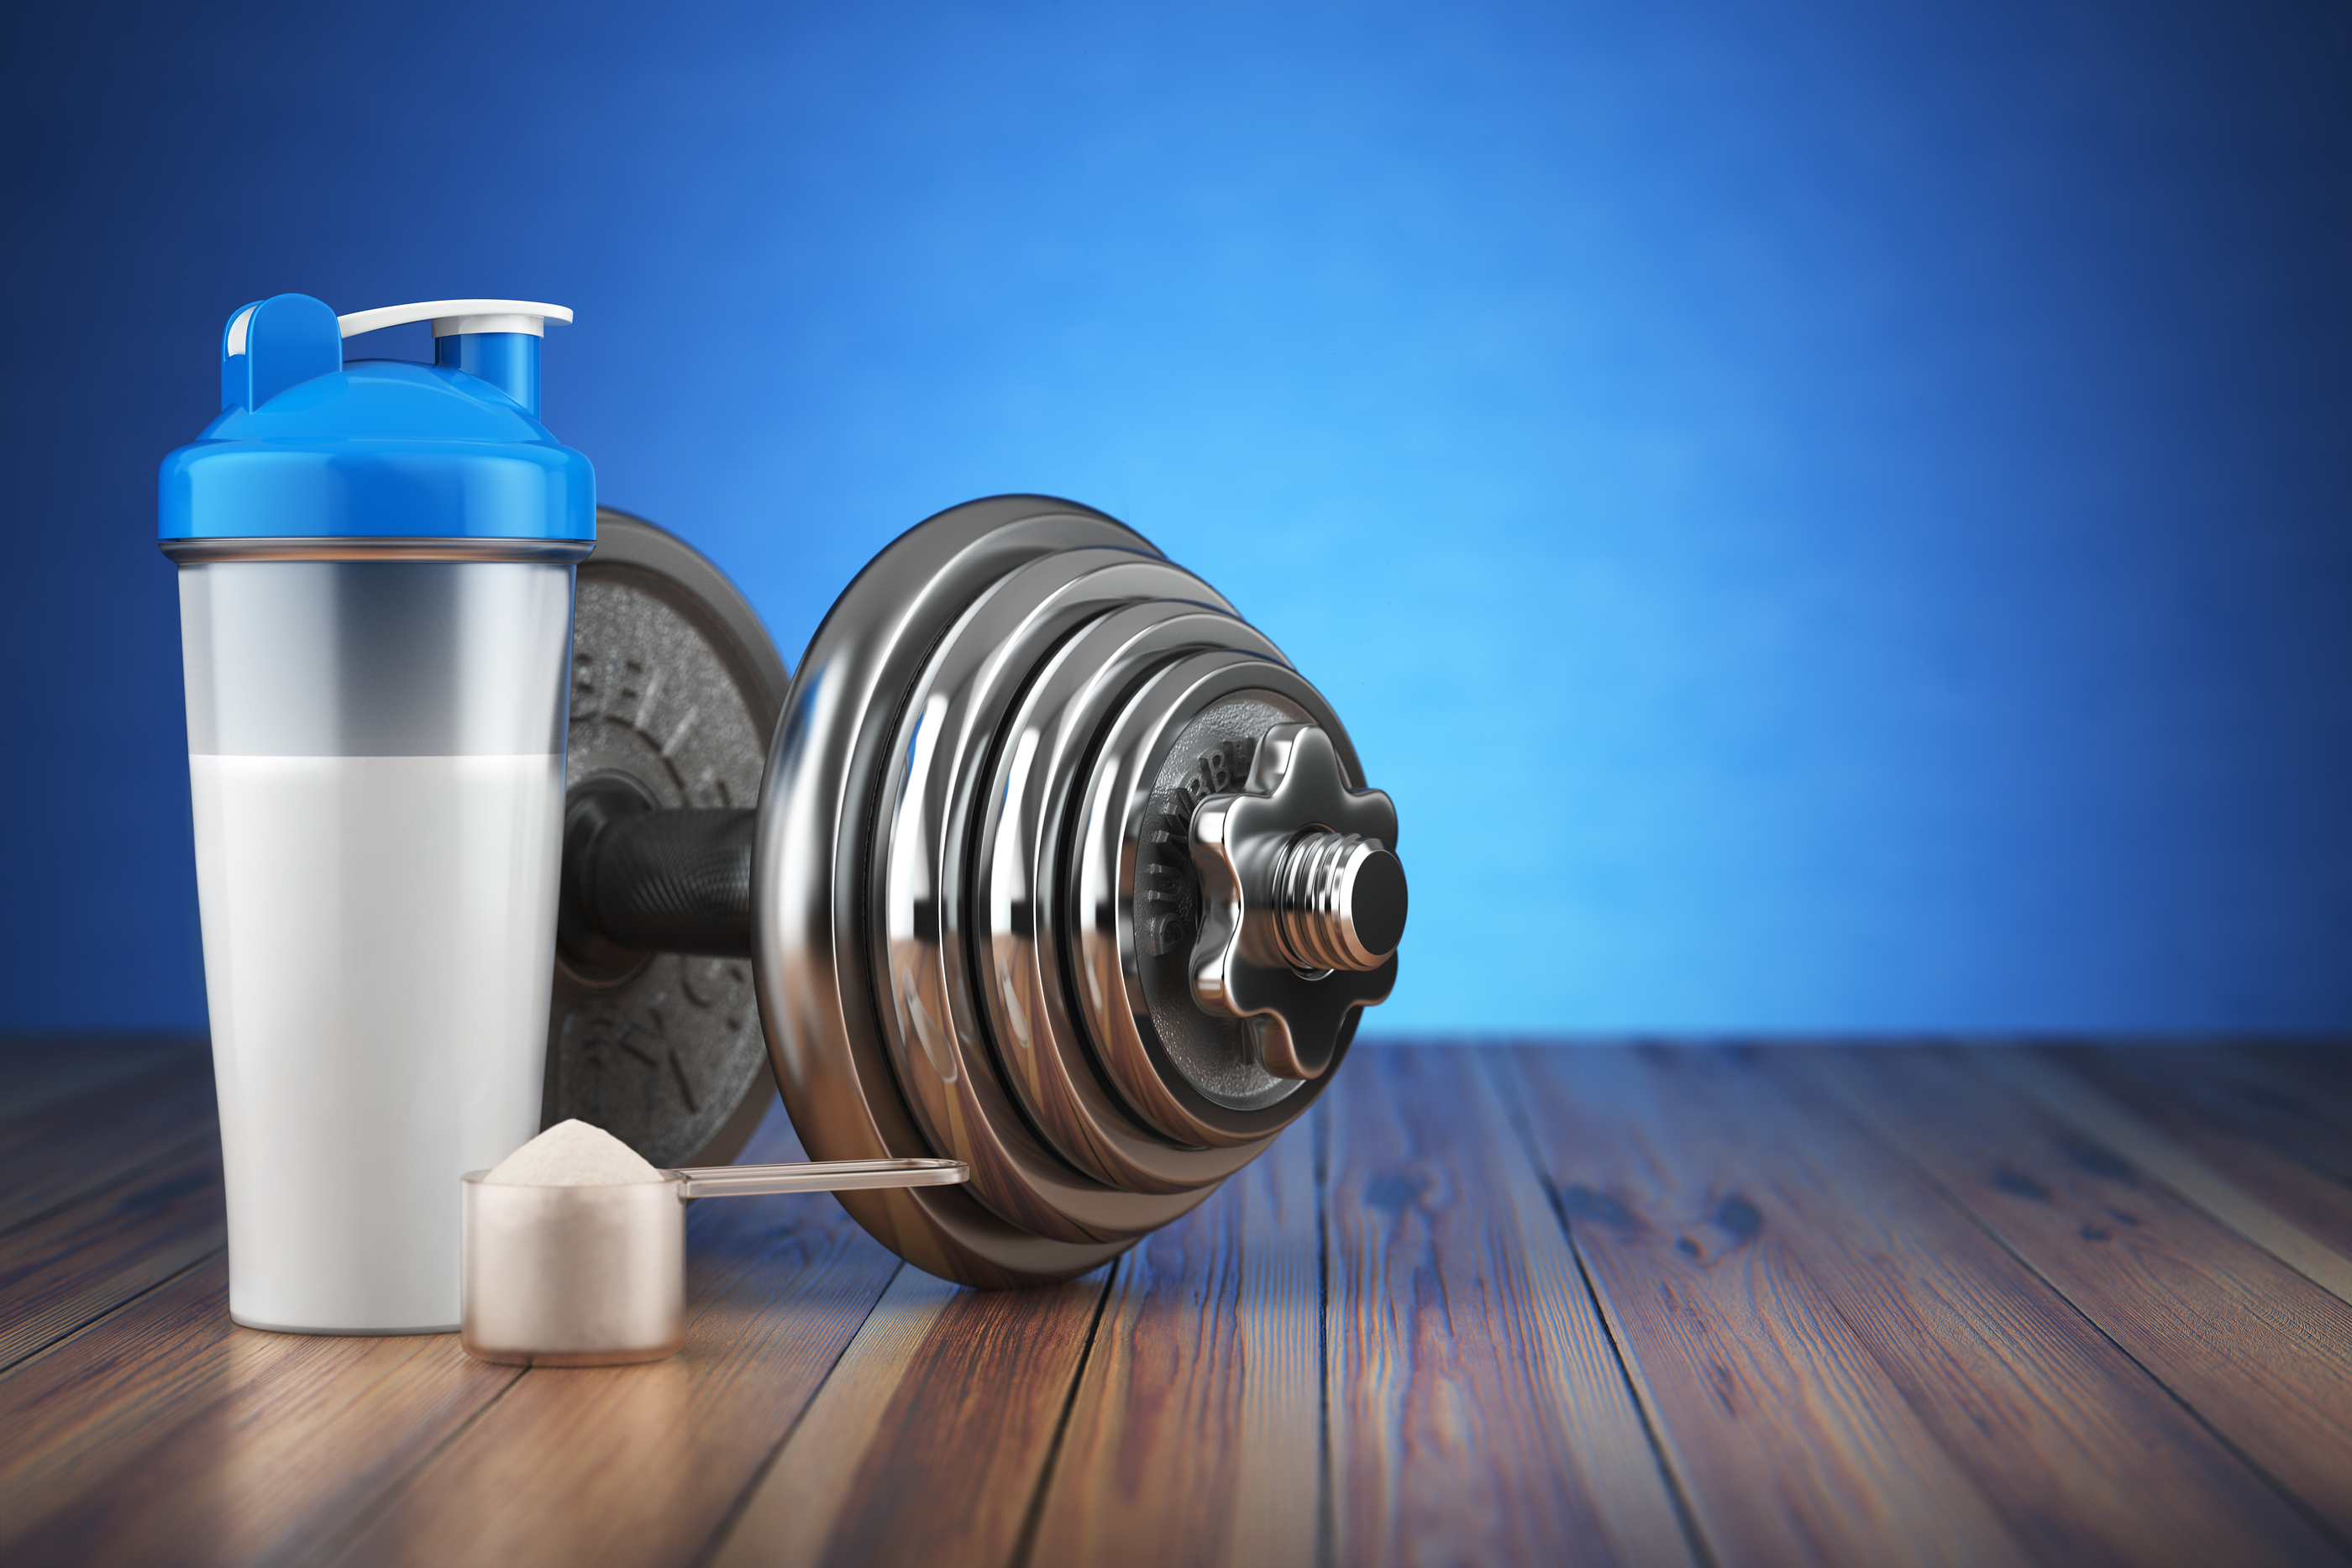 Dumbbell and whey protein shaker. Sports bodybuilding supplements or nutrition. Fitness or healthy l